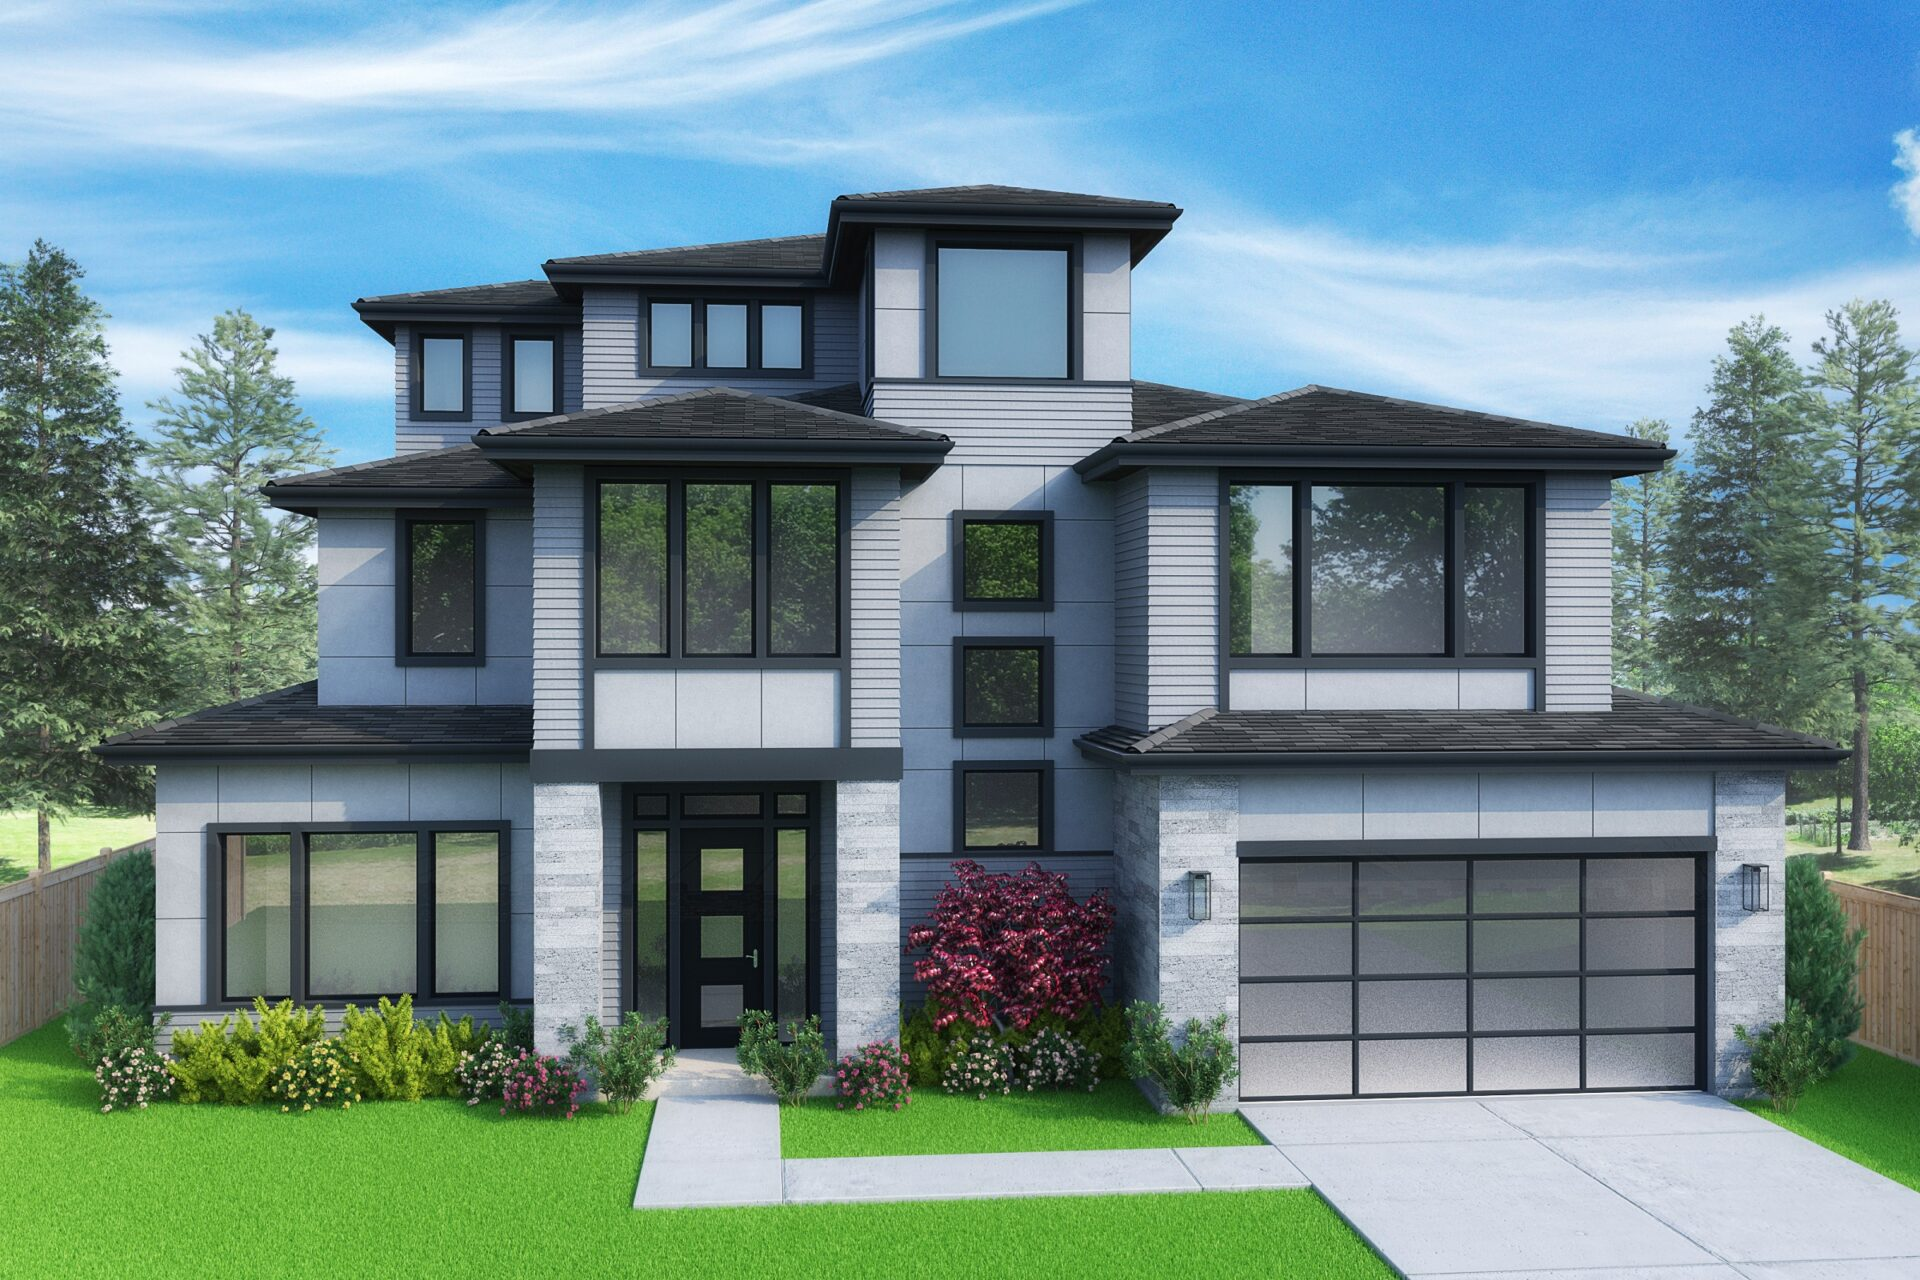 View our new luxury home construction on 602 129th AVE SE, in Bellevue, WA from MN Custom Homes